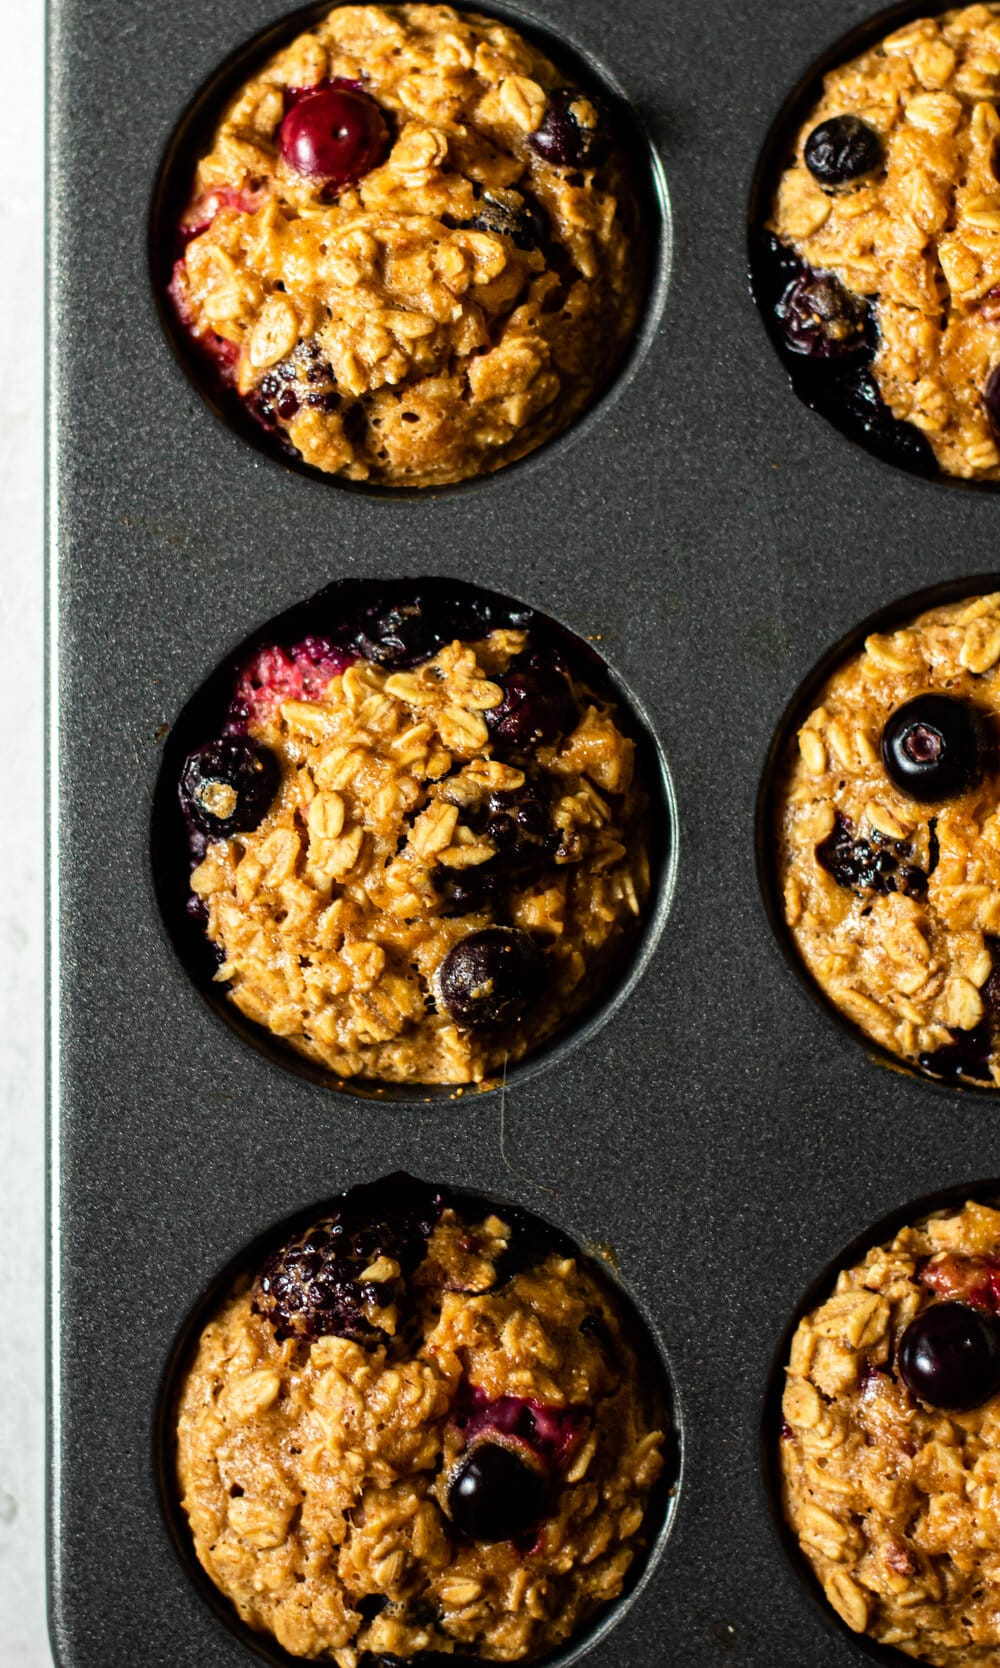 Triple Berry Baked Oatmeal Cups in a muffin pan